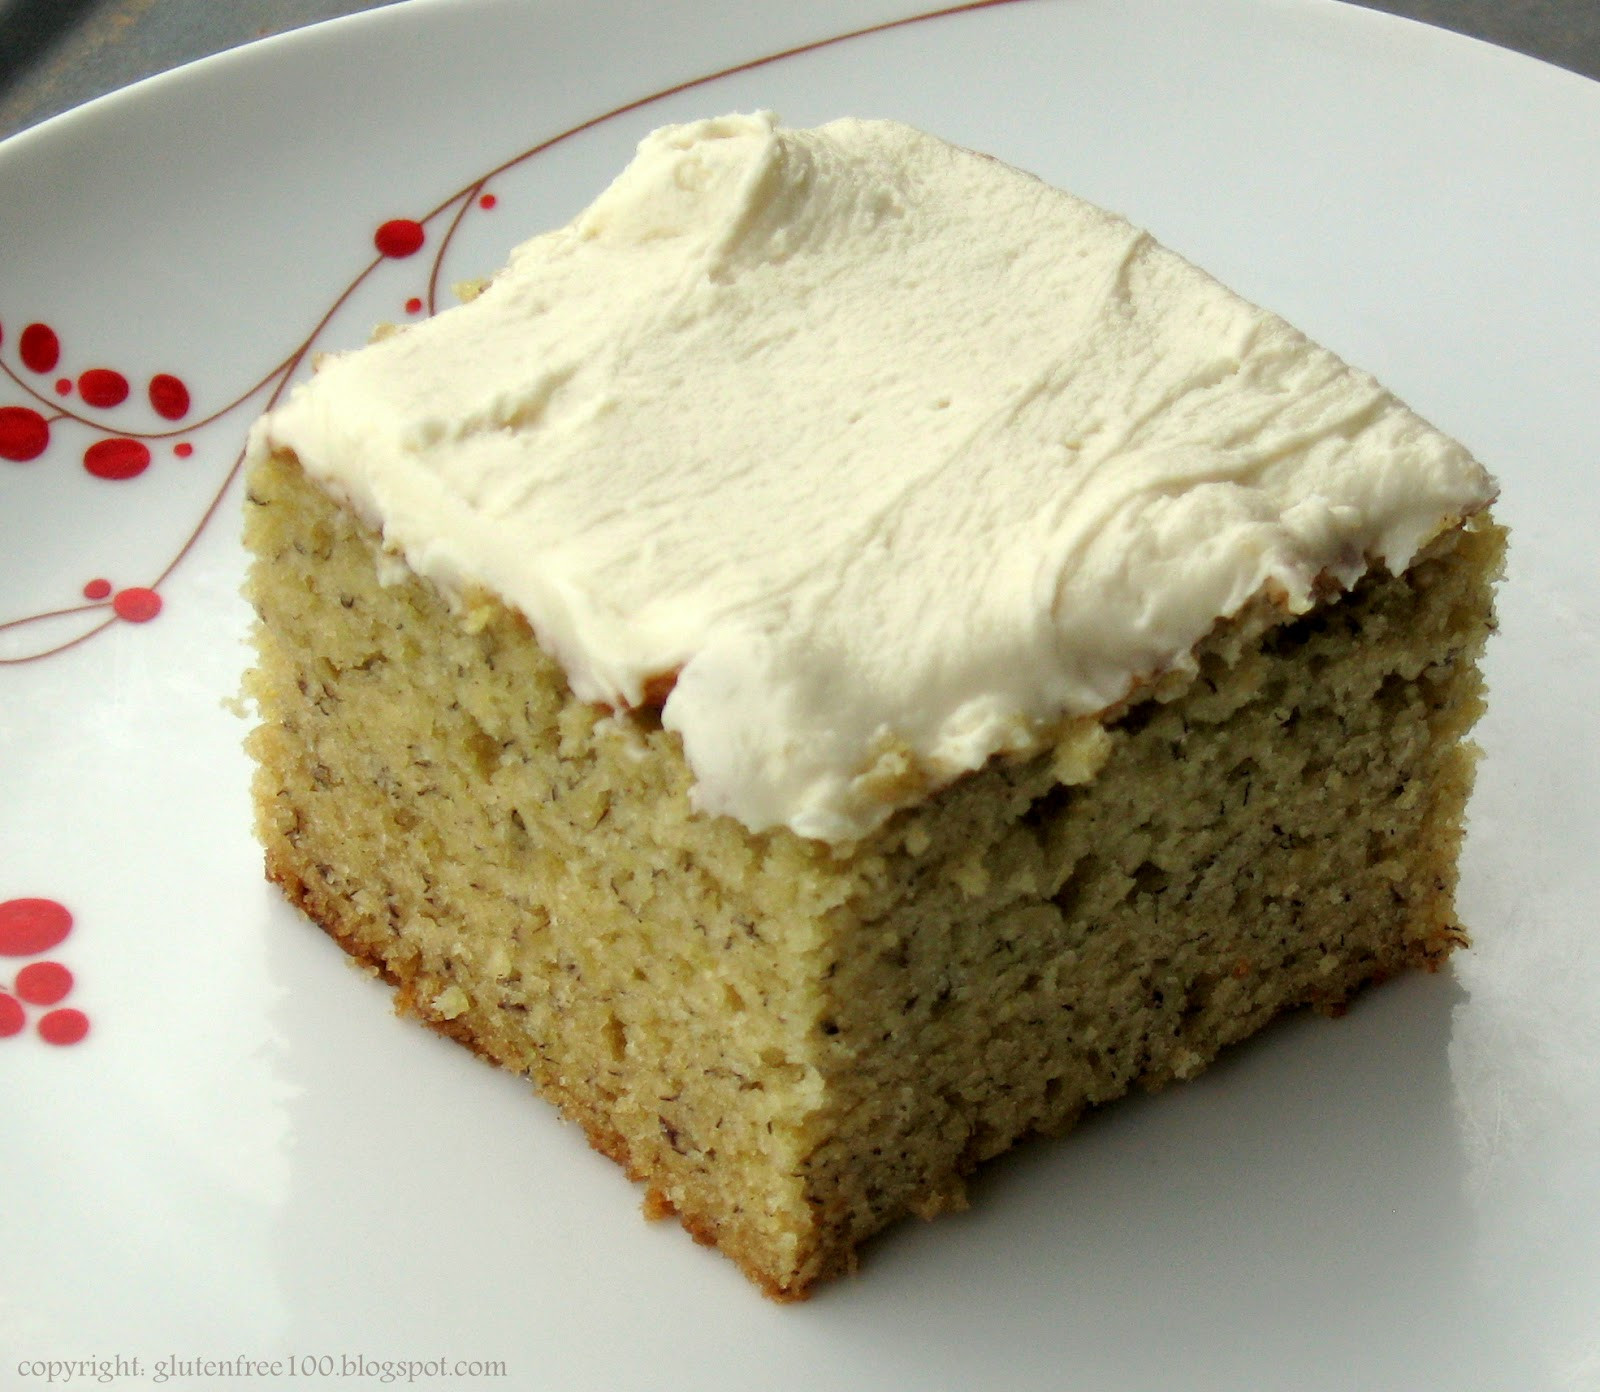 Gluten Free Cake Recipes  Gluten Free Banana Cake with Browned Butter Frosting Recipe